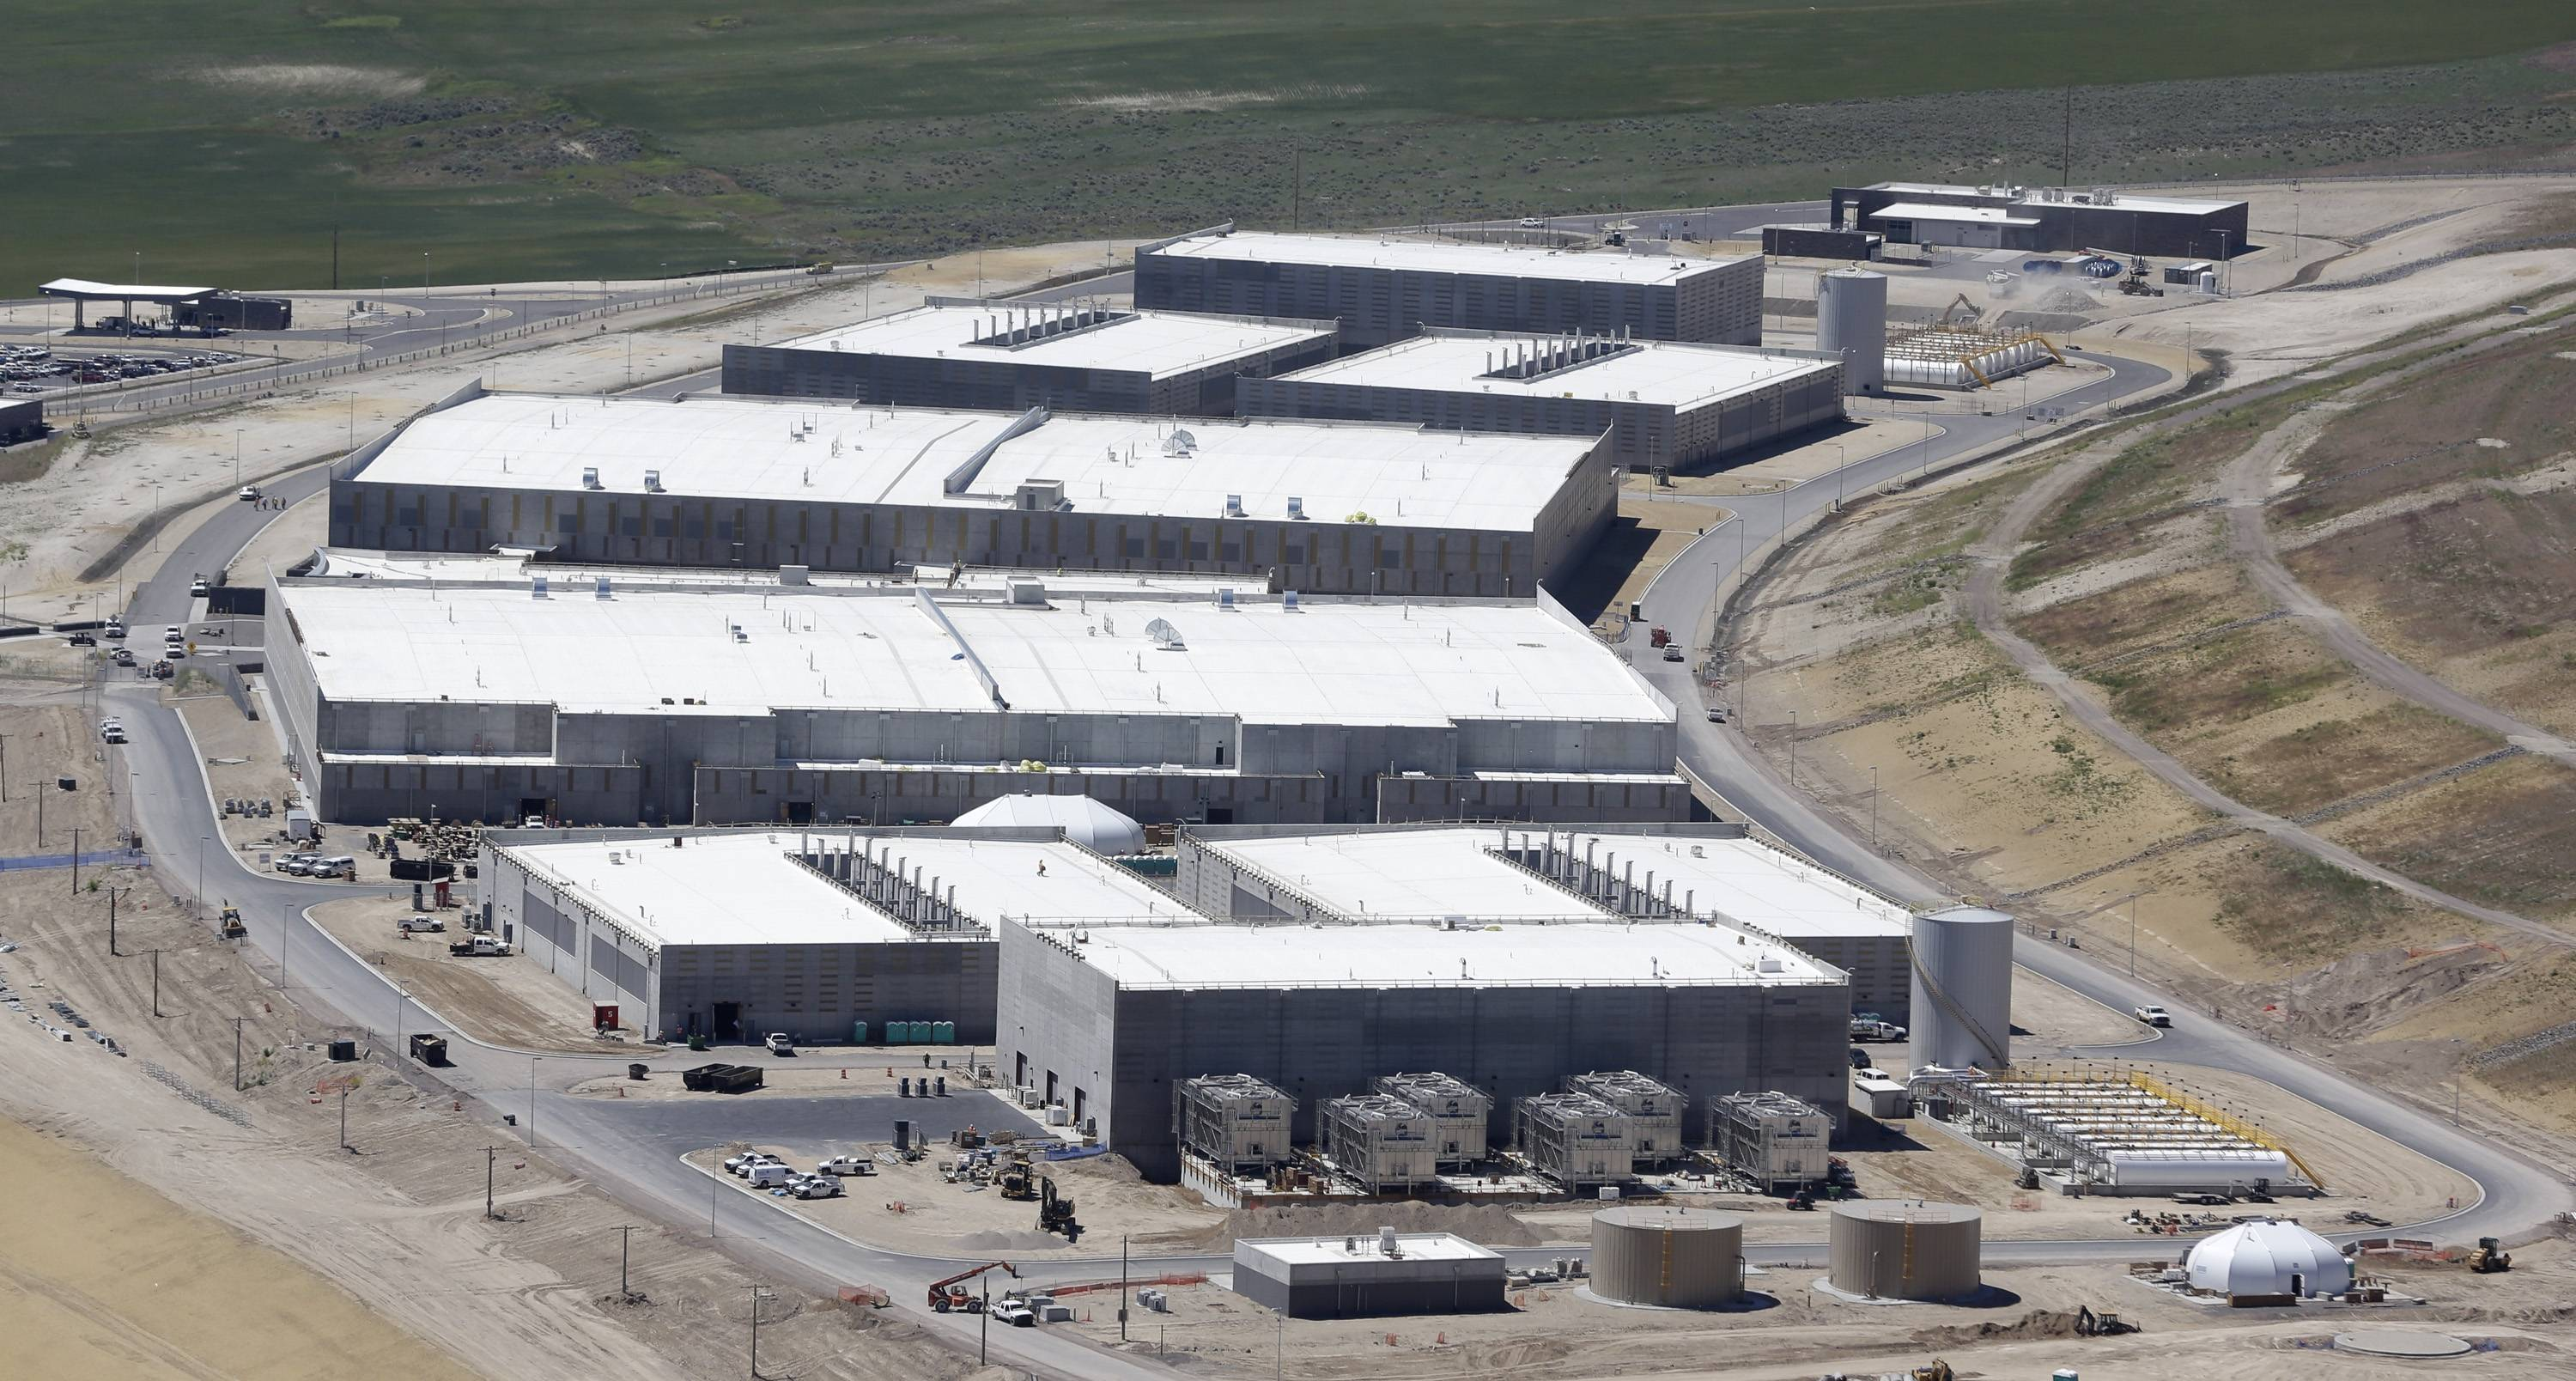 Associated Press/June 6, 2013The National Security Agency's Utah Data Center in Bluffdale, Utah.